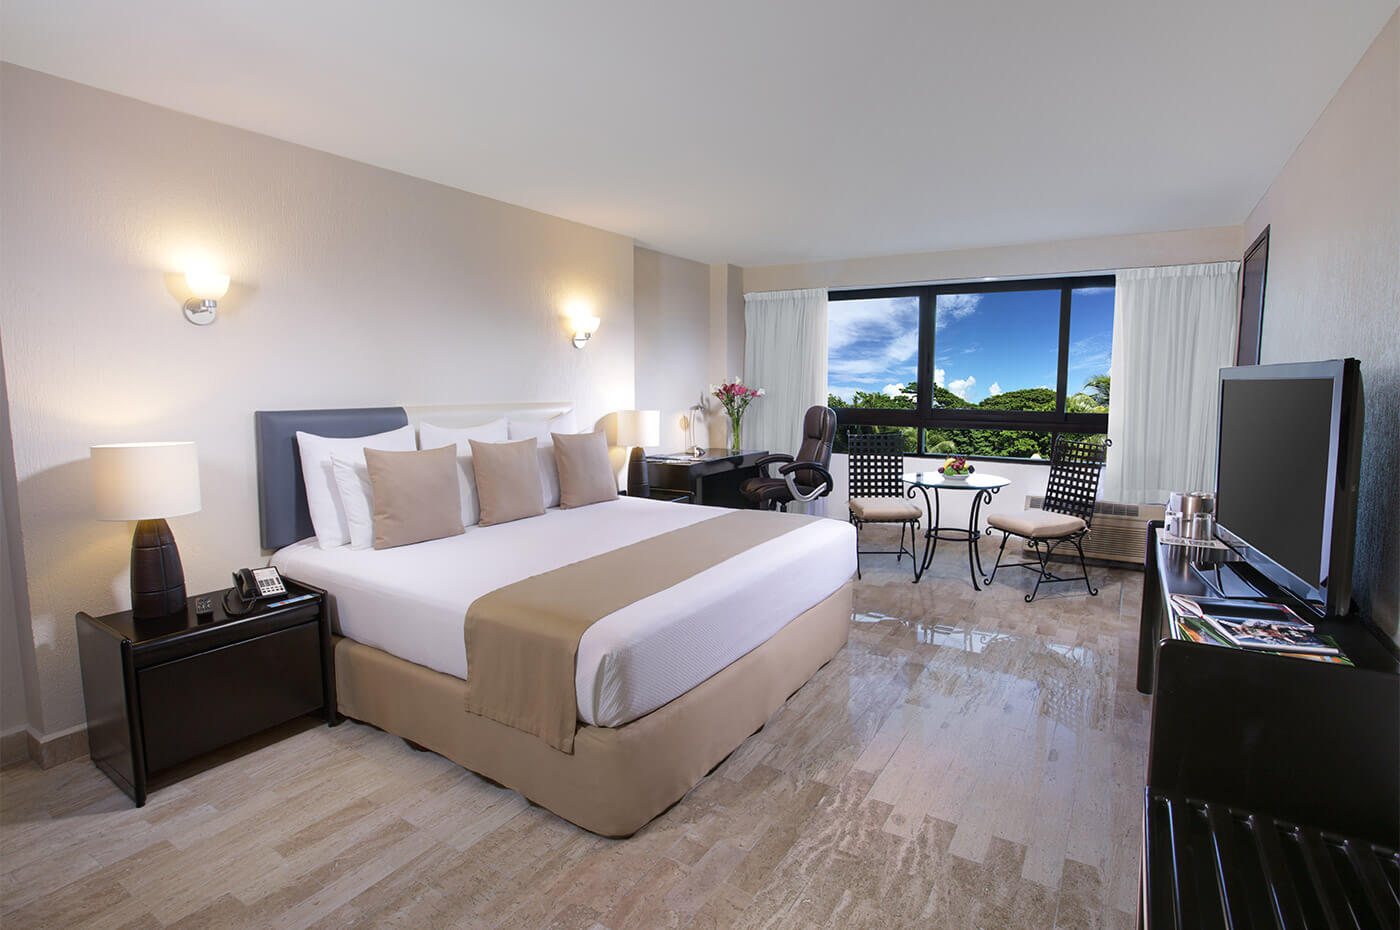 Executive Room with King Size bed and window with beautiful view in Smart Cancun by Oasis Hotel